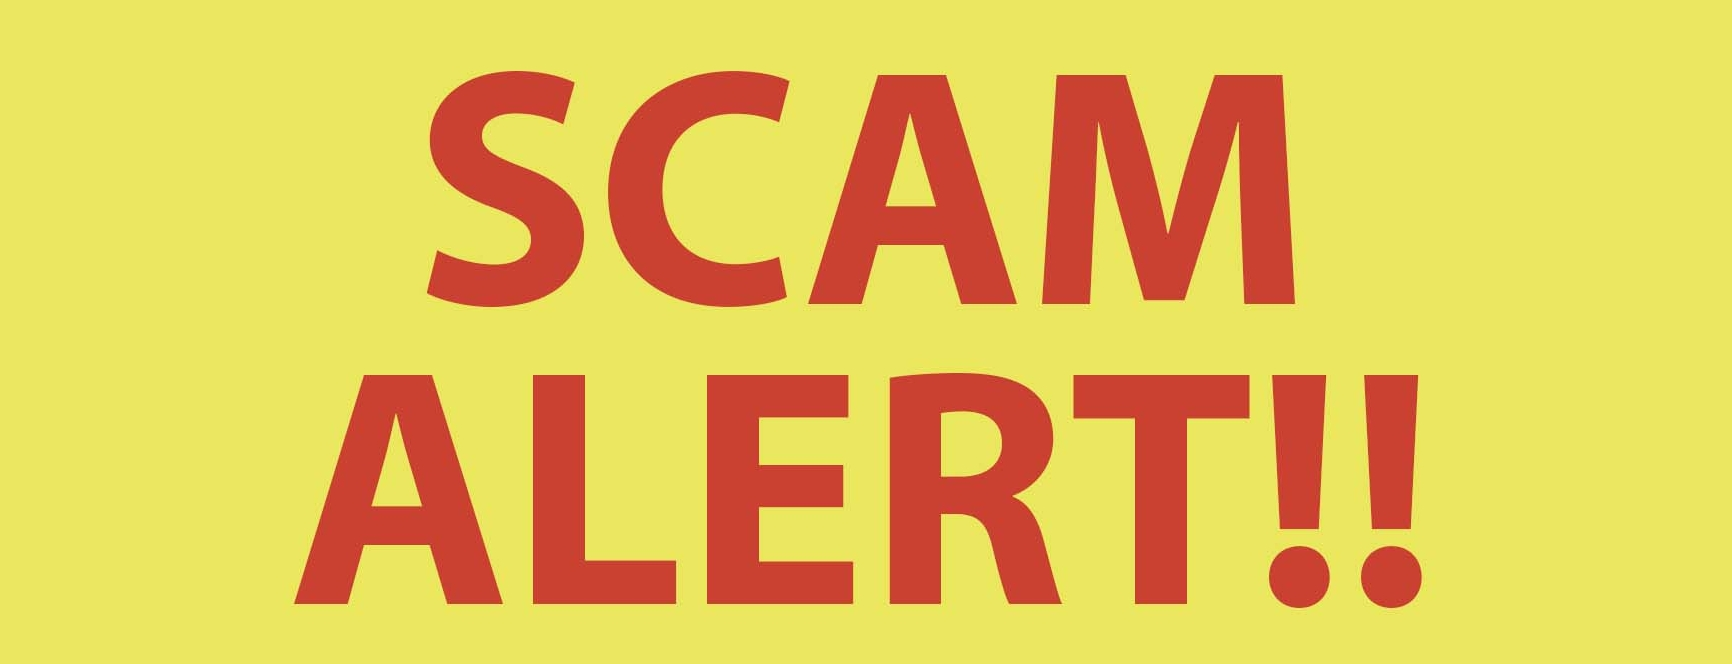 Unfortunately not all scams are that easy to spot but if your processes are water tight the scammers have to show their hand eventually.